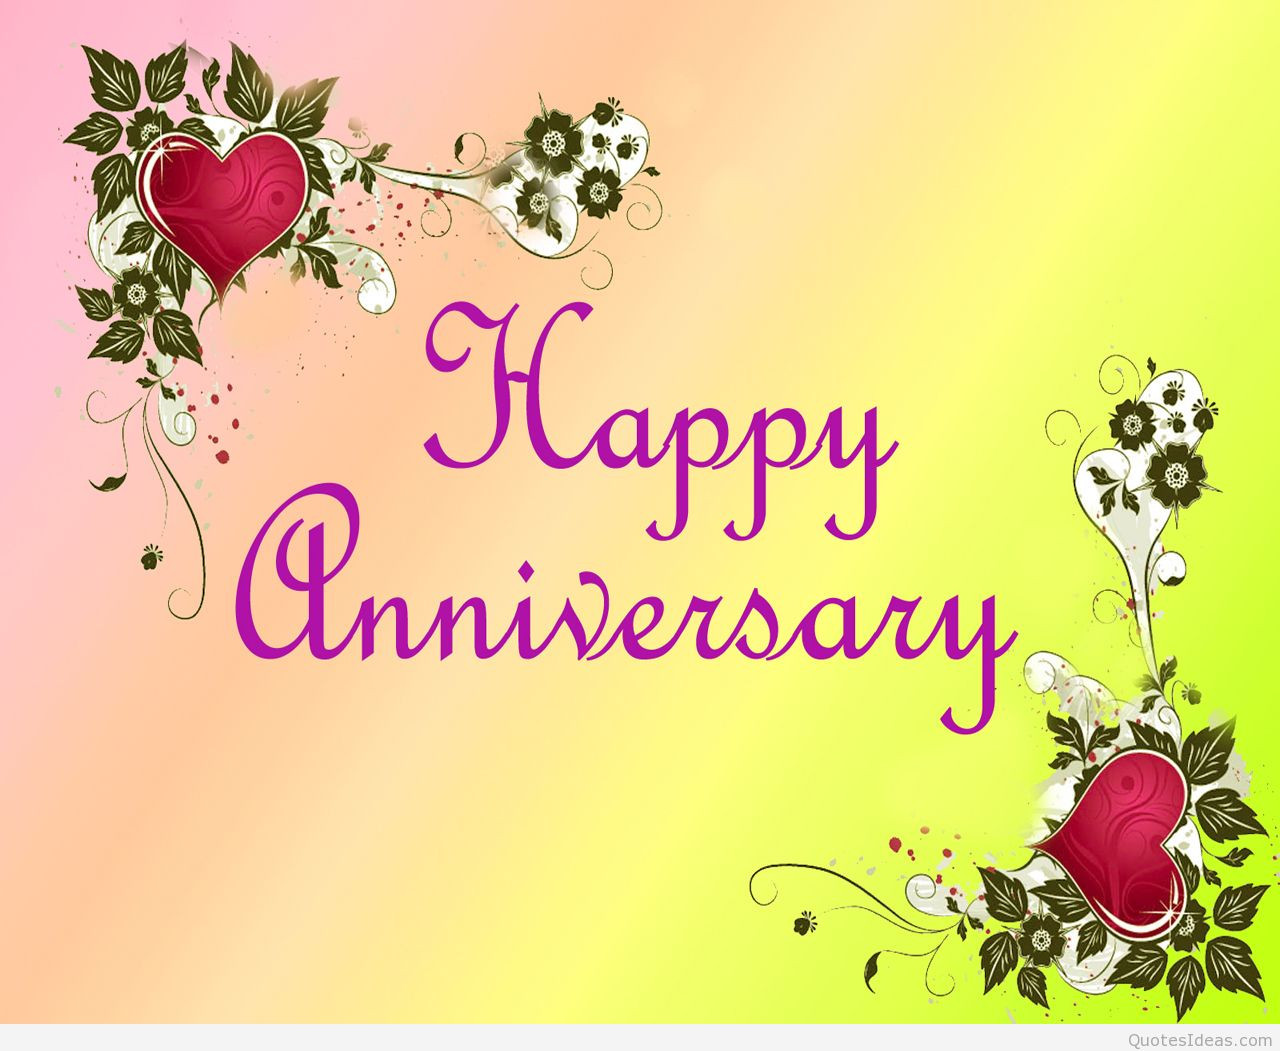 Happy Marriage Anniversary Quotes  Happy Anniversary Quotes For QuotesGram